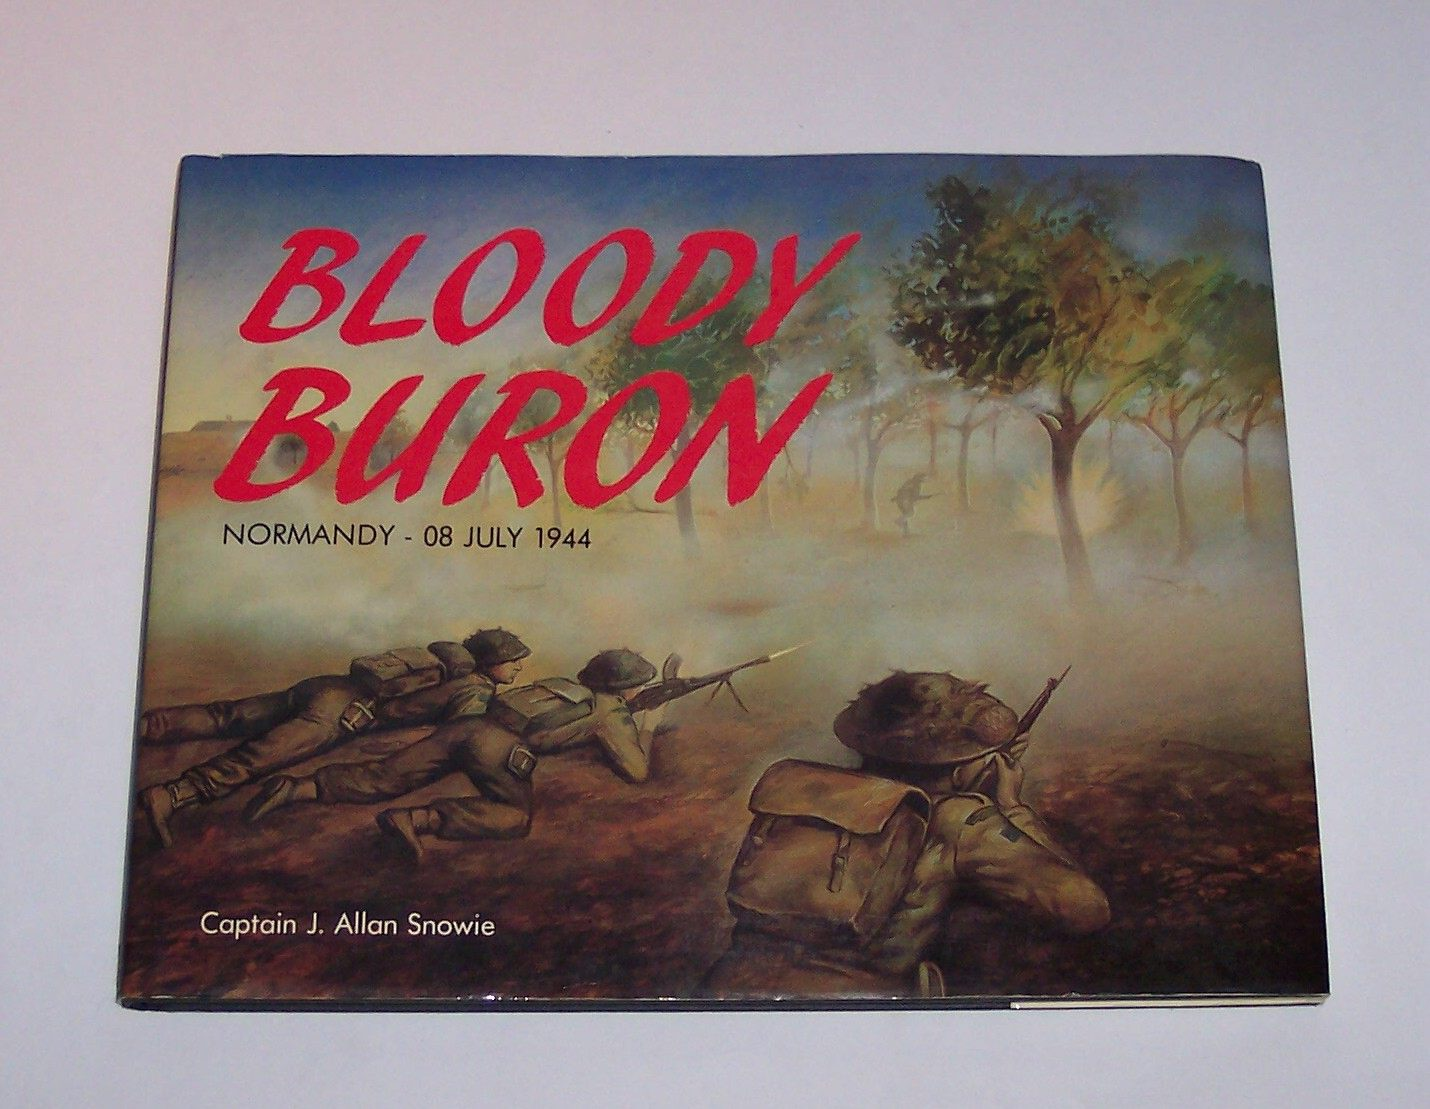 Image for Bloody Buron Normandy - 08 July 1944